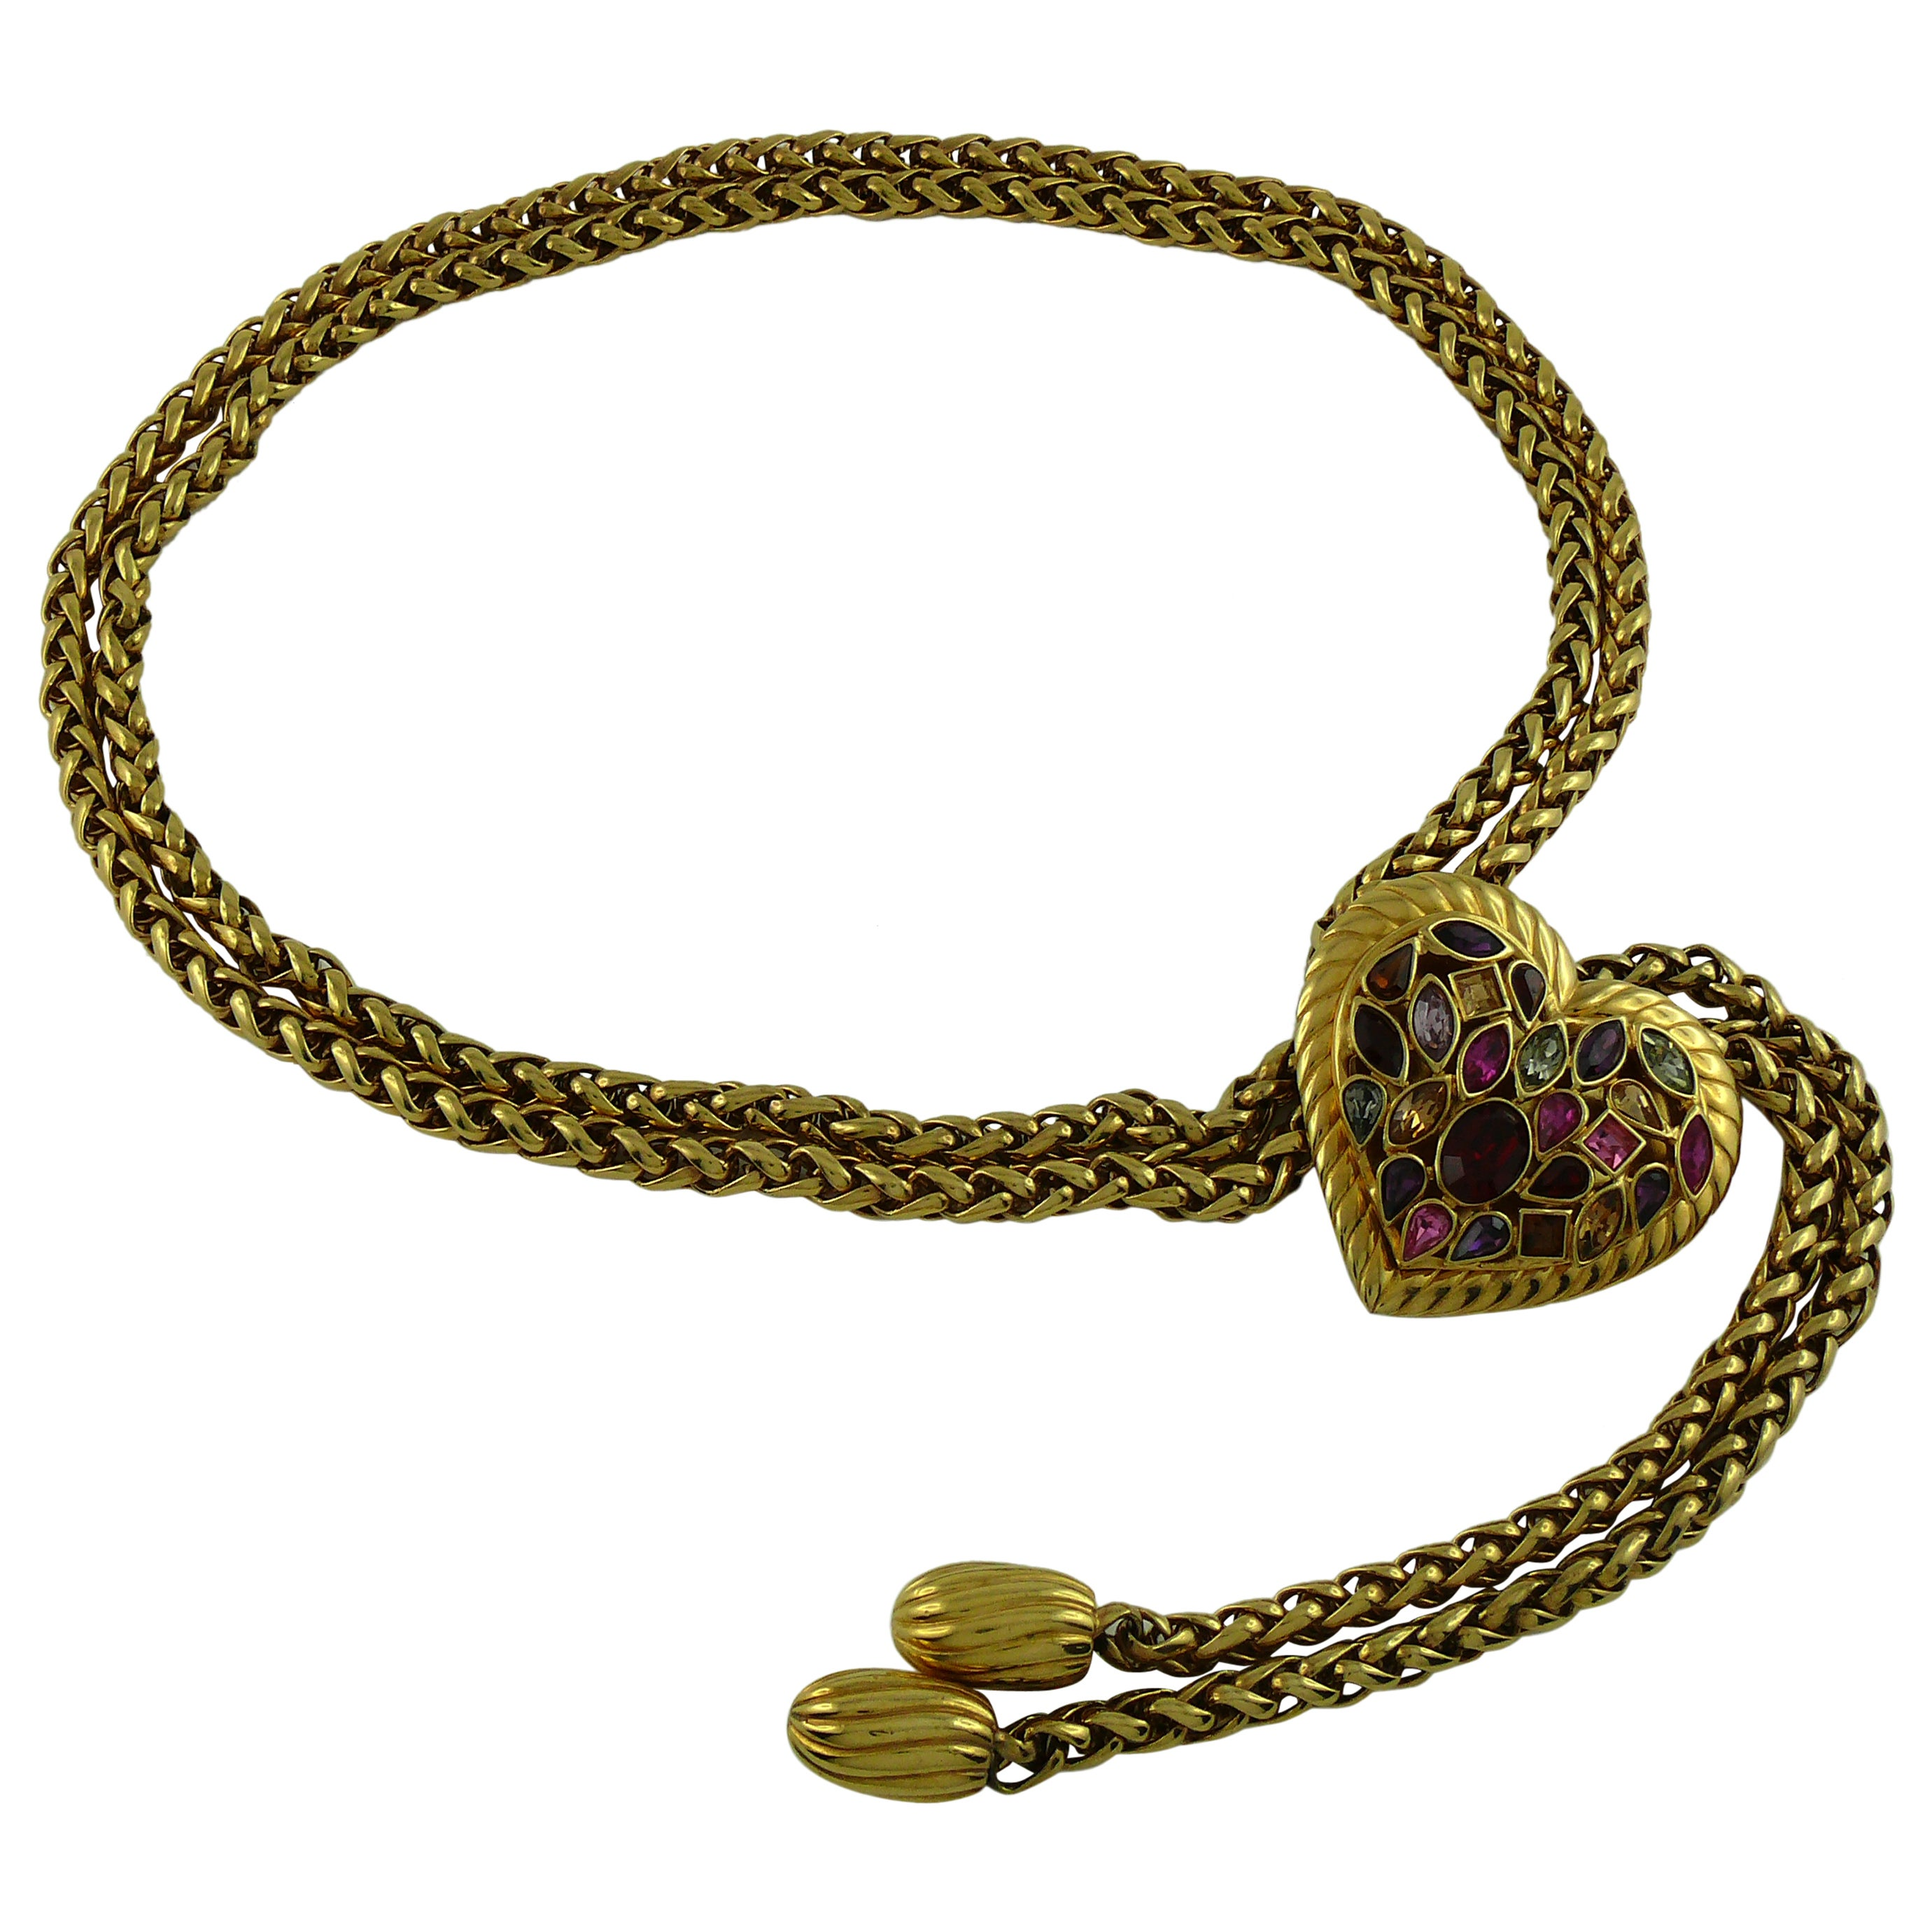 50c8e6aa397 Yves Saint Laurent YSL Vintage Rare Jewelled Heart Chain Belt For Sale at  1stdibs